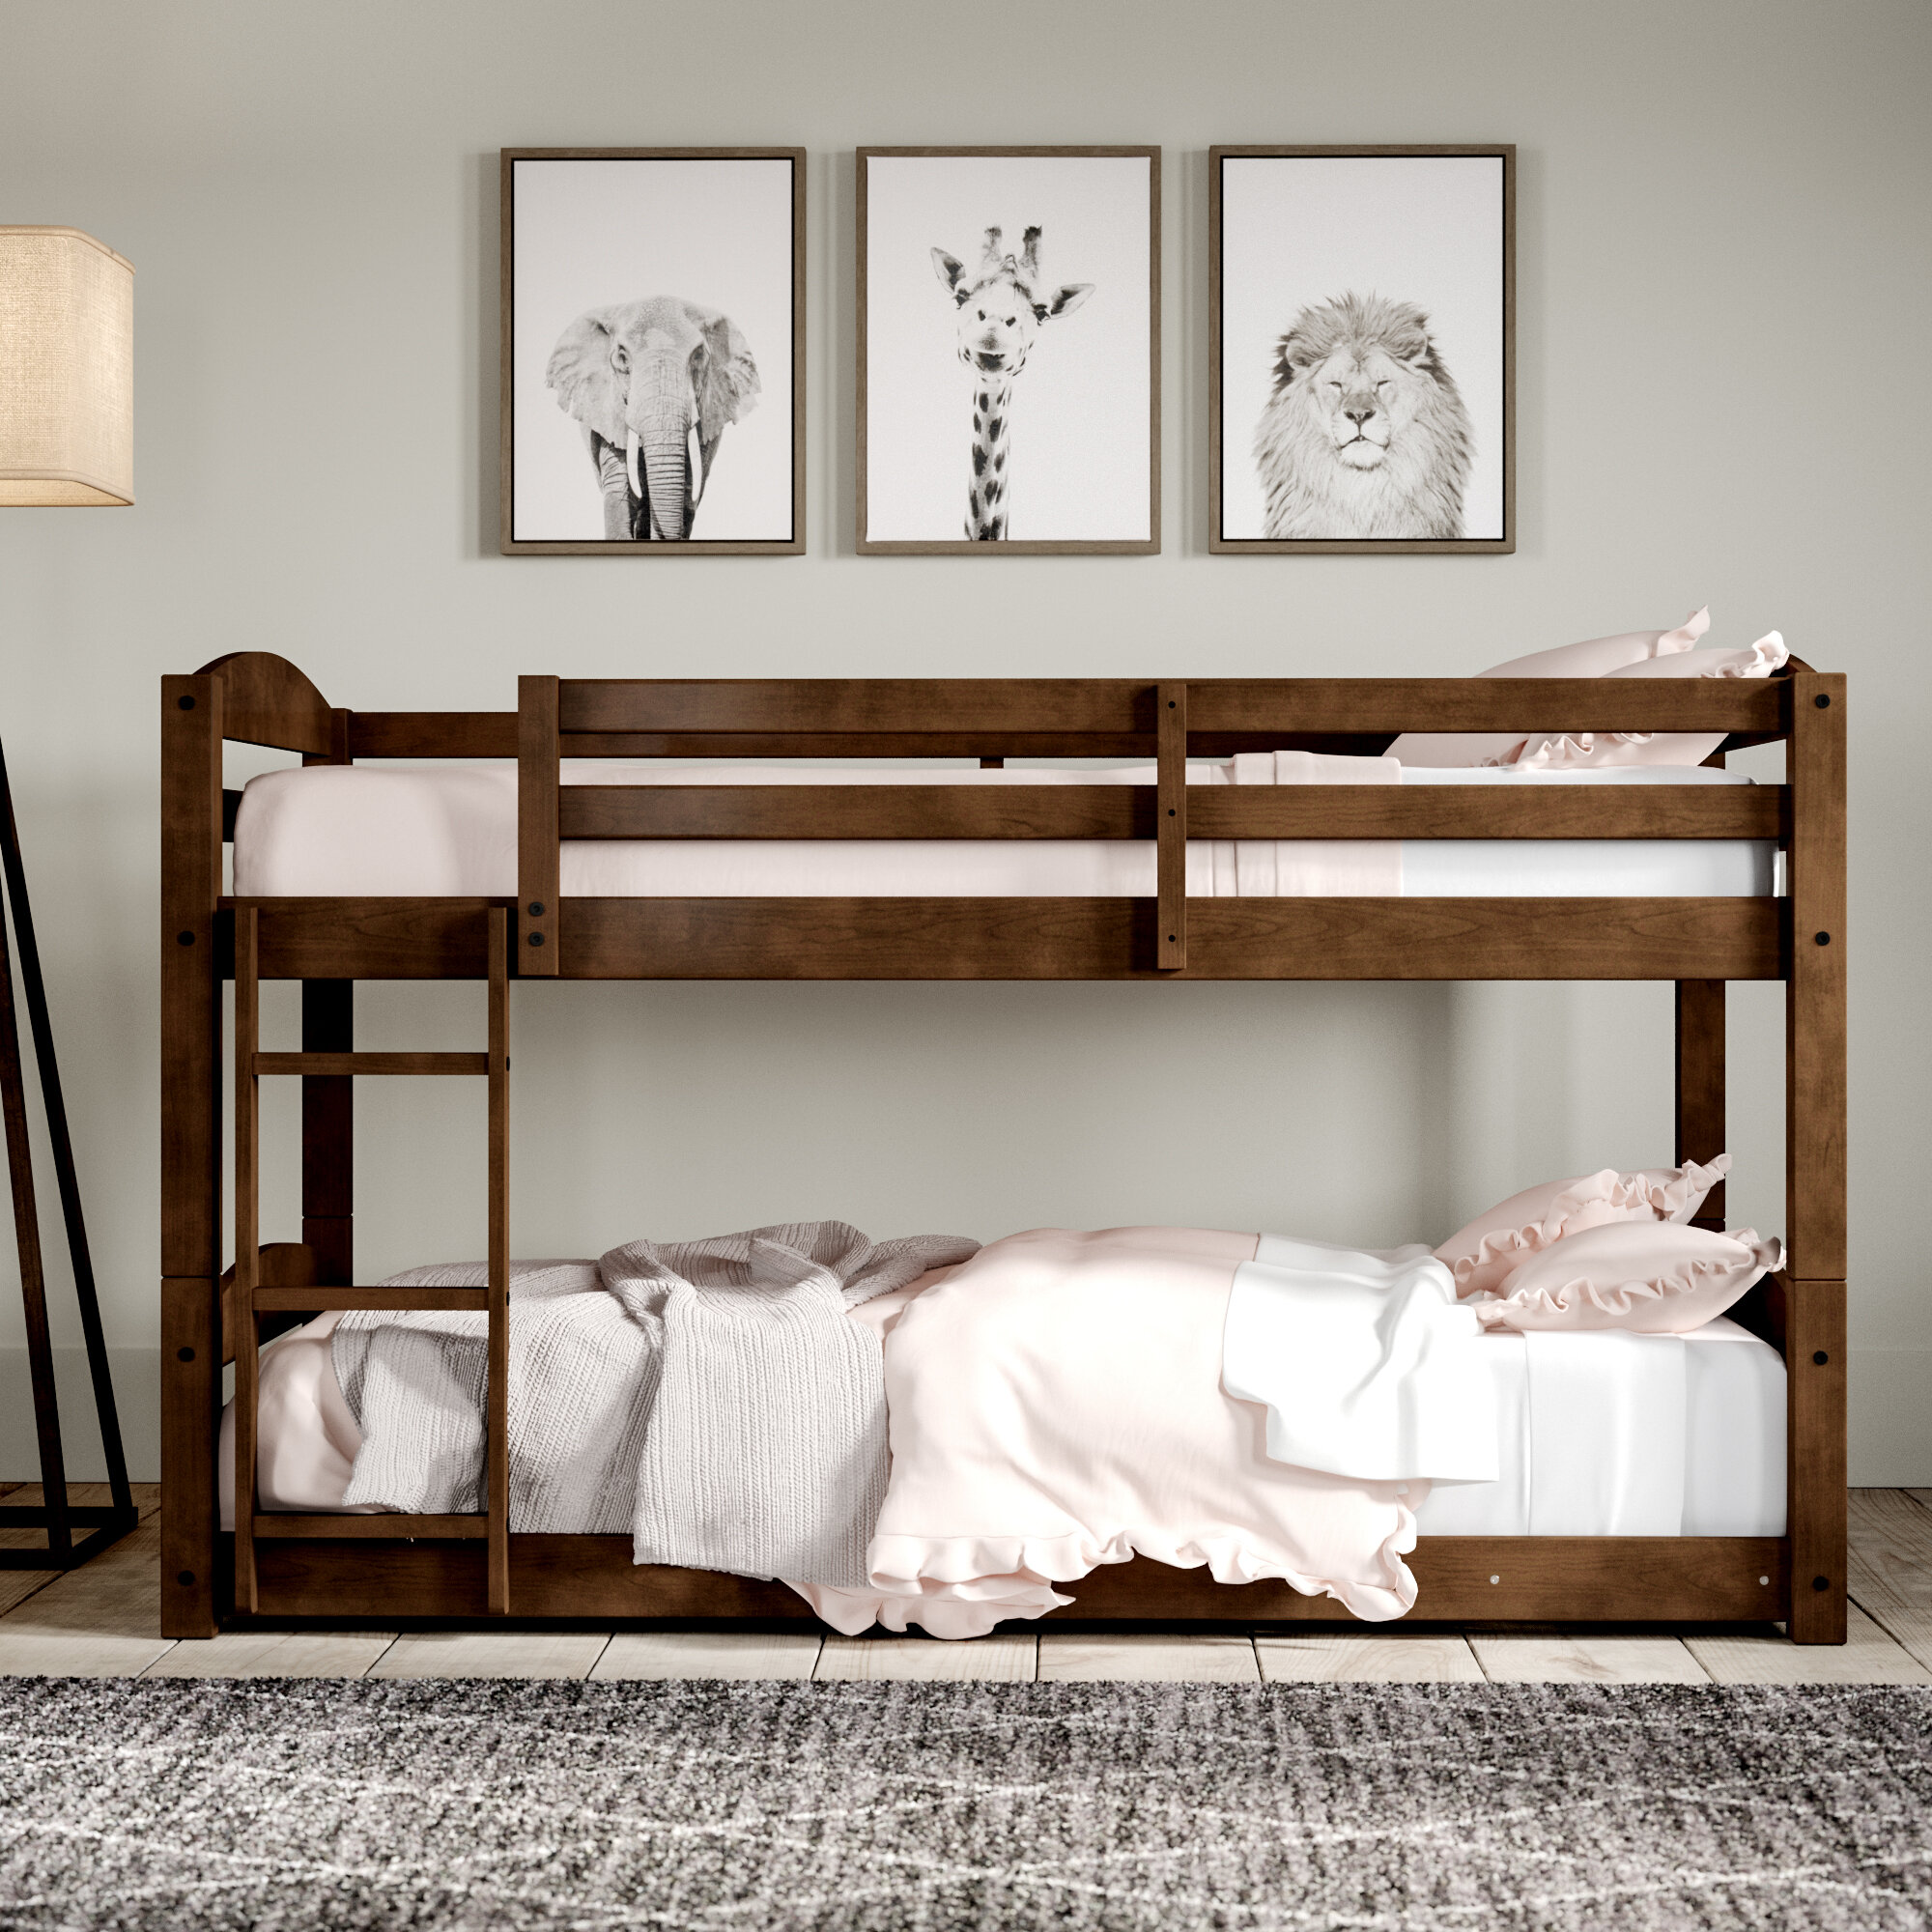 Greyleigh Bellmead Twin Bunk Bed Reviews Wayfair